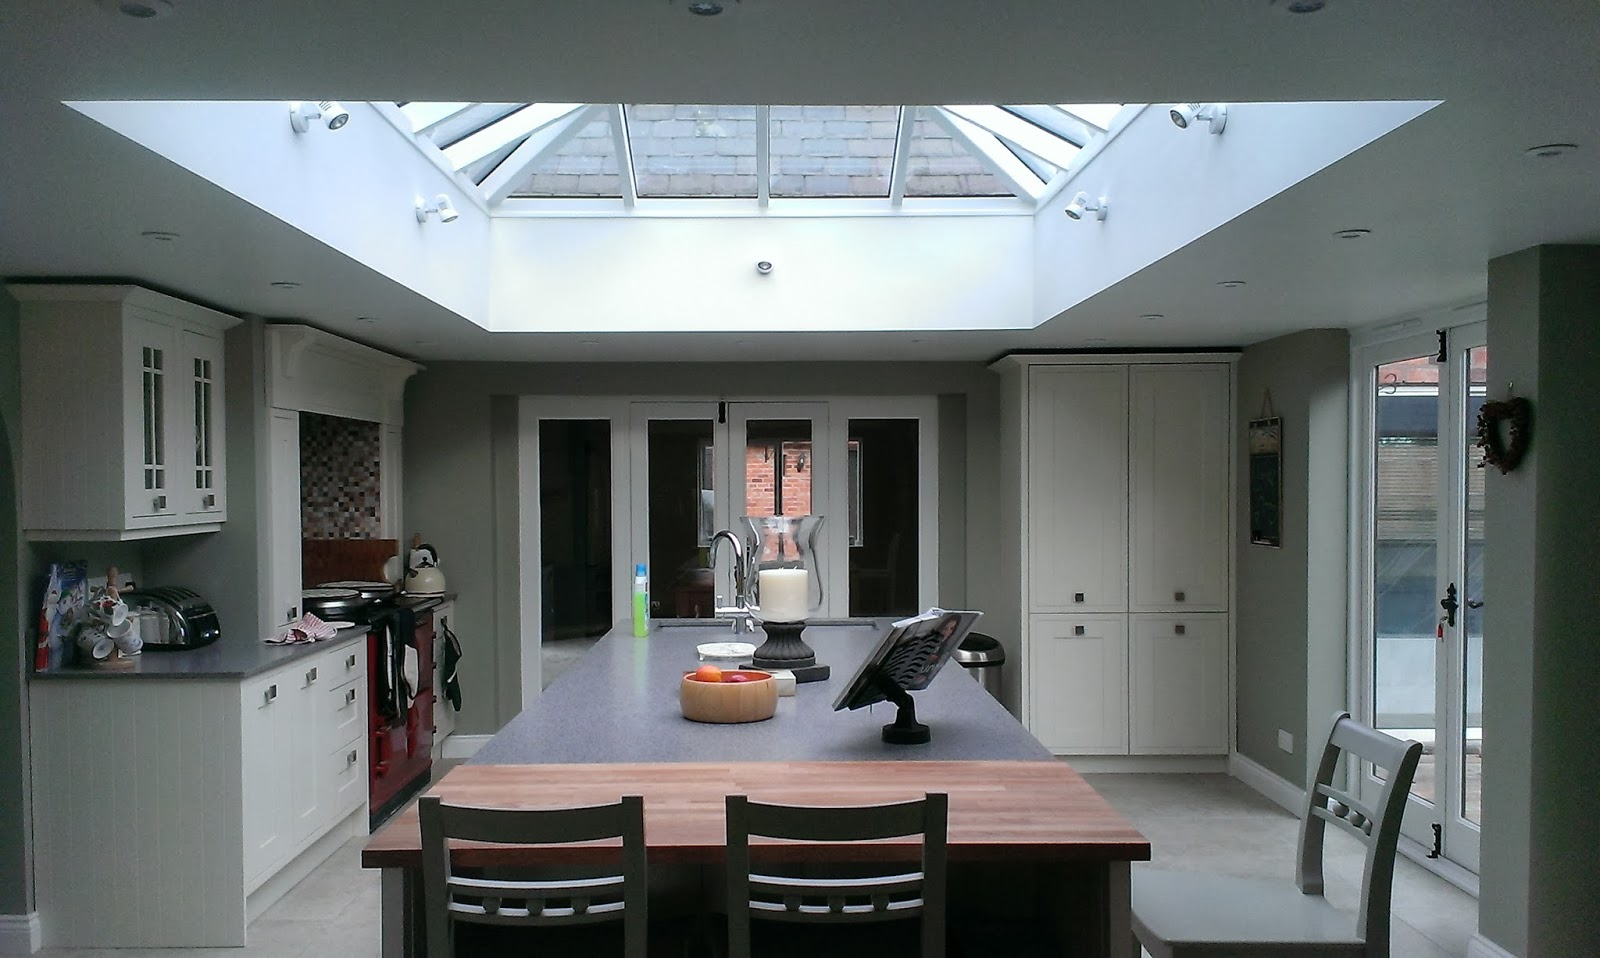 star gazing roof lantern for your home lantern kitchen lighting Roof Lantern Lantern Light Kitchen Lisa Melvin Design